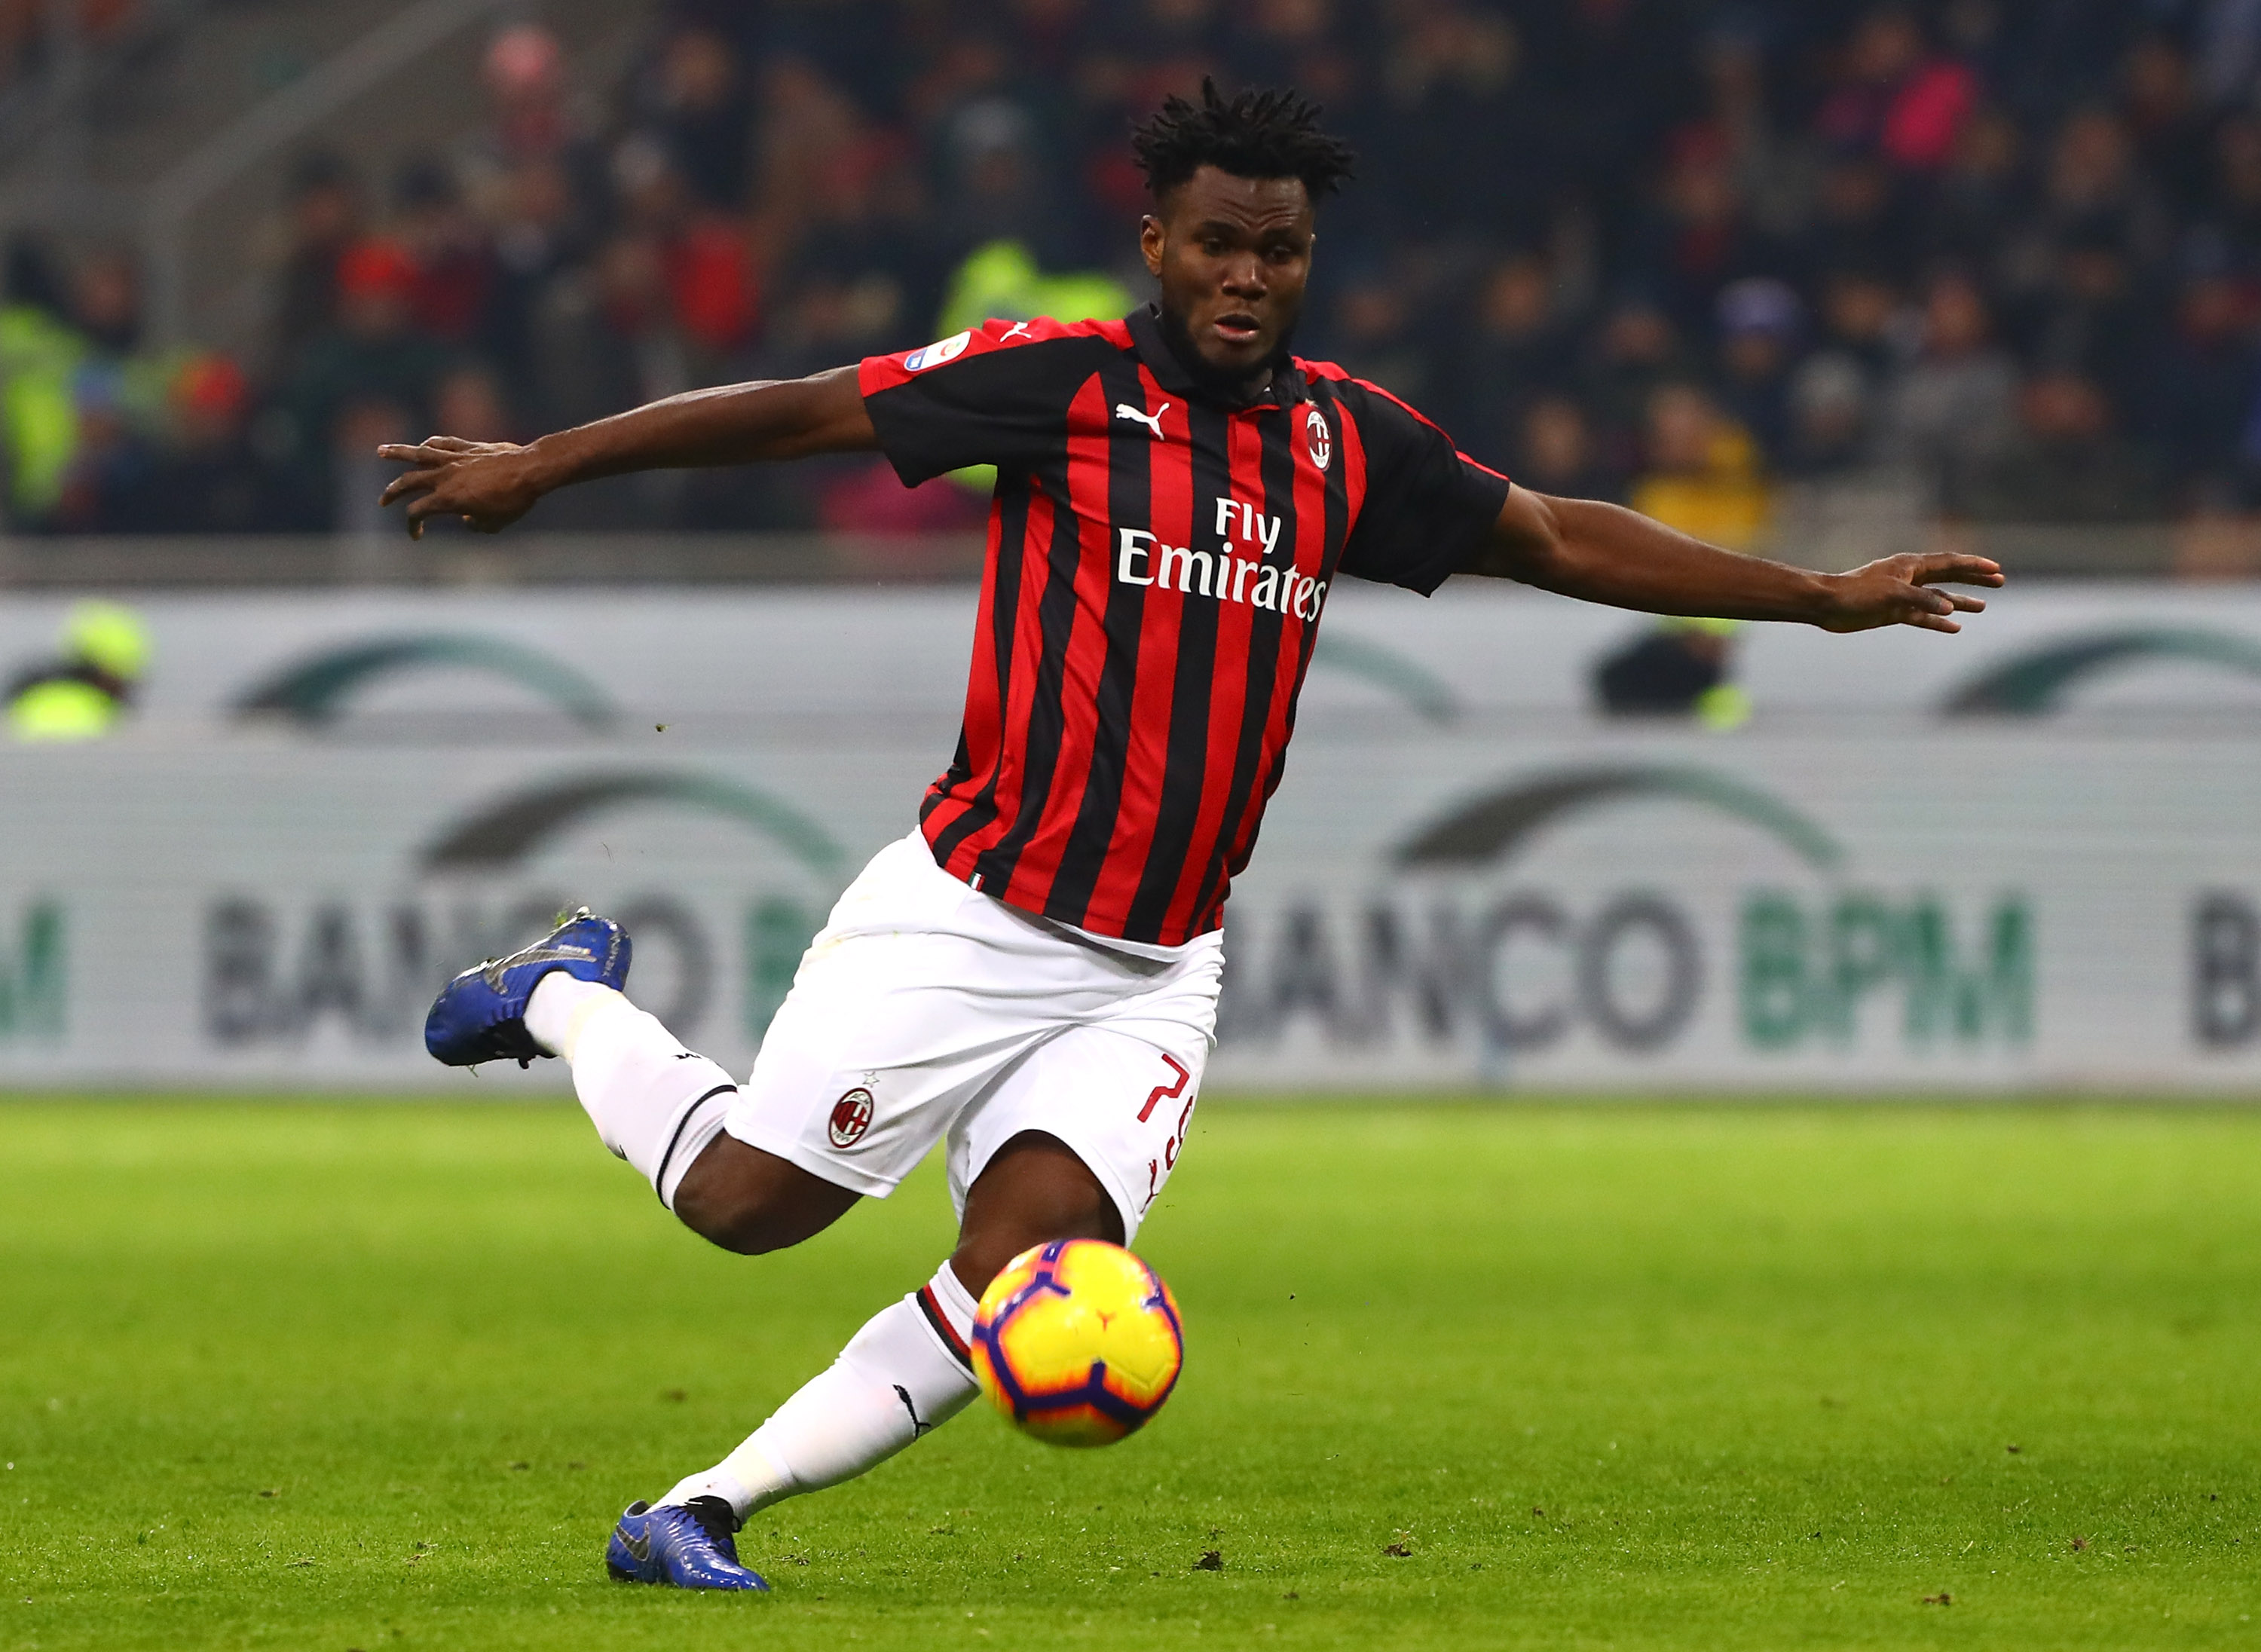 Franck Kessie is strongly considered as a replacement for Aaron Ramsey at Arsenal in the summer. (Photo courtesy: AFP/Getty)